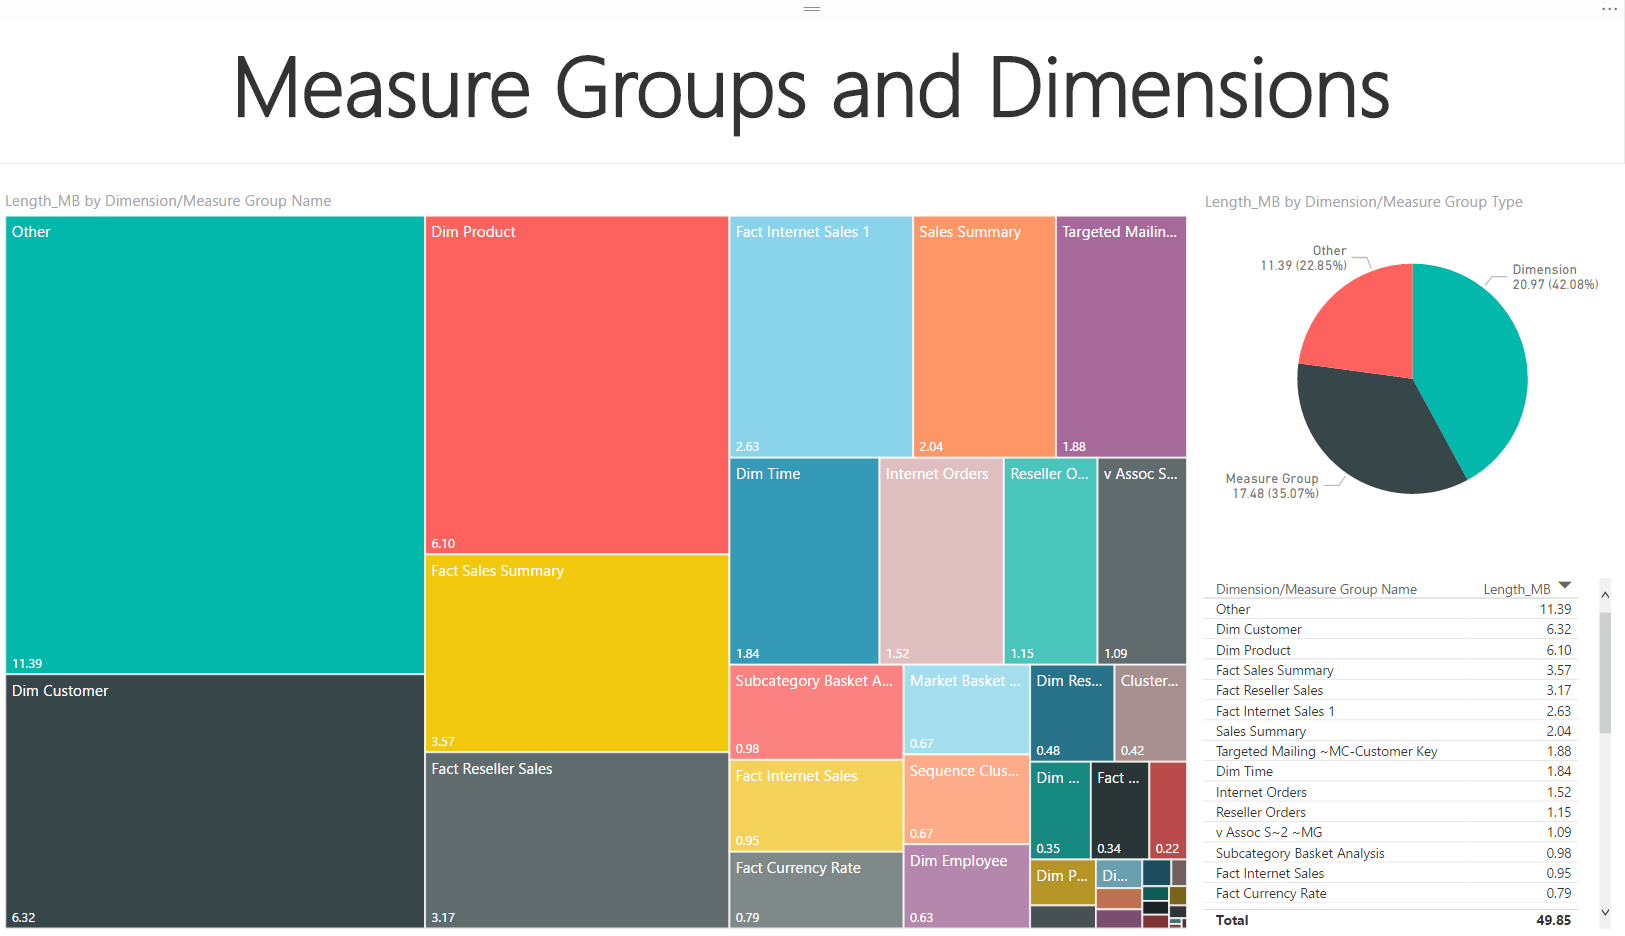 Measure Groups and Dimensions